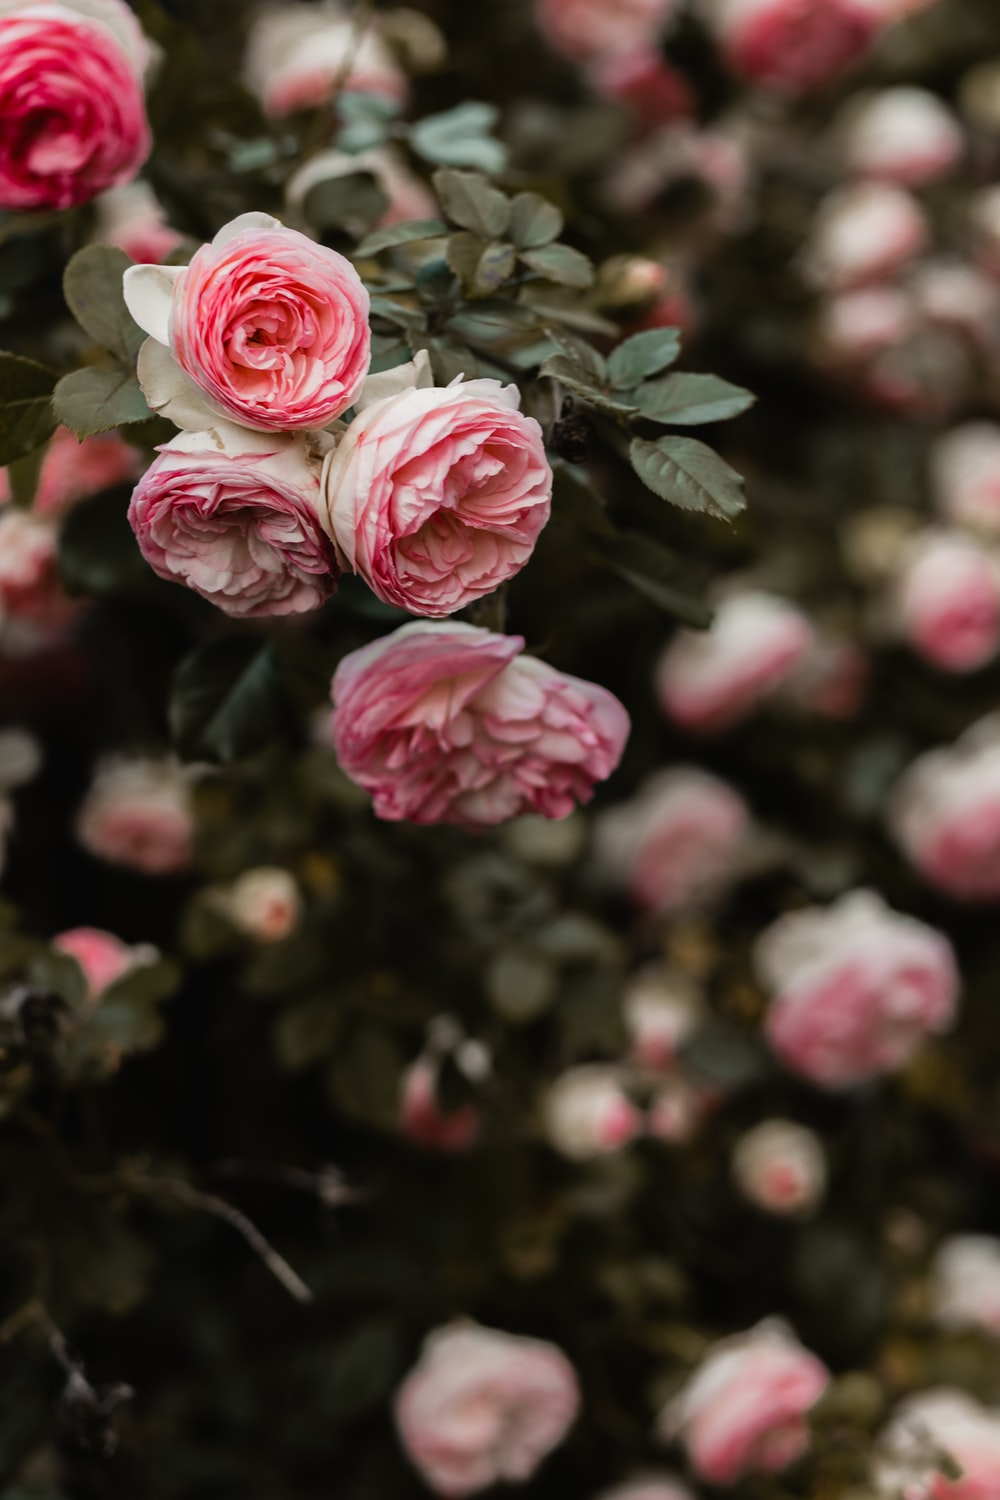 100 rose flower pictures download free images on unsplash pink petaled flowers selective focus photography mightylinksfo